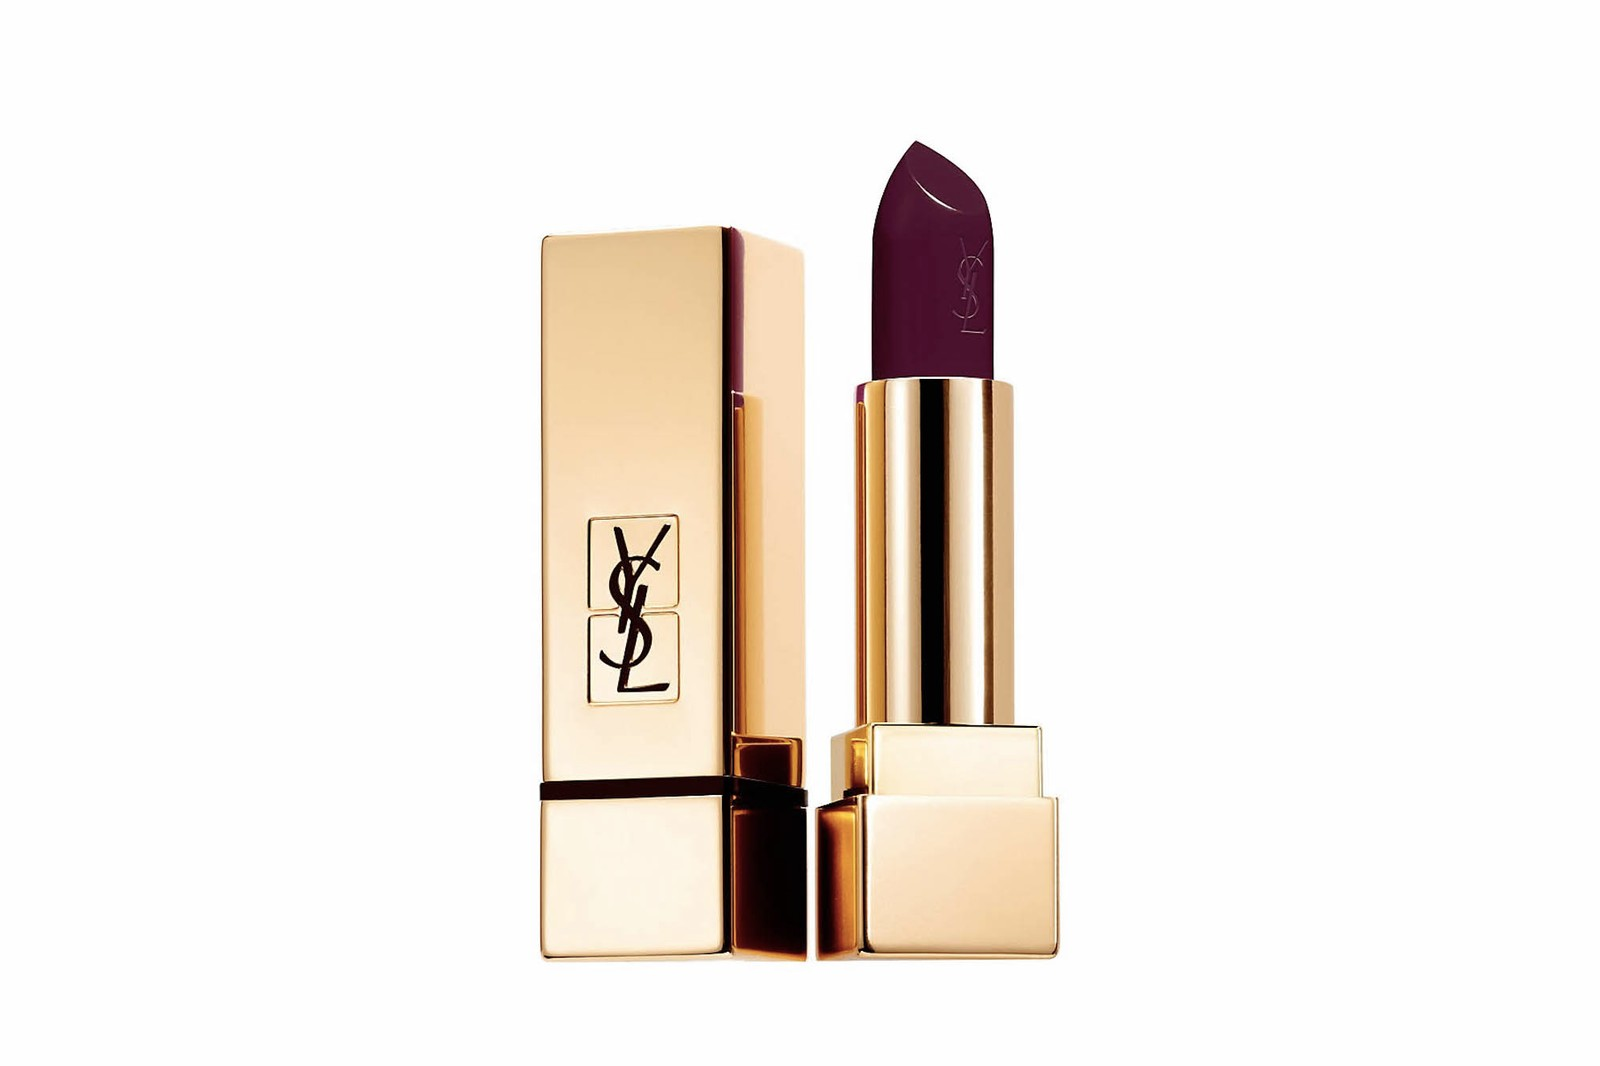 Best Dark Lipstick Fall/Winter Makeup Trend Givenchy Chanel Charlotte Tilbury NARS Marc Jacobs